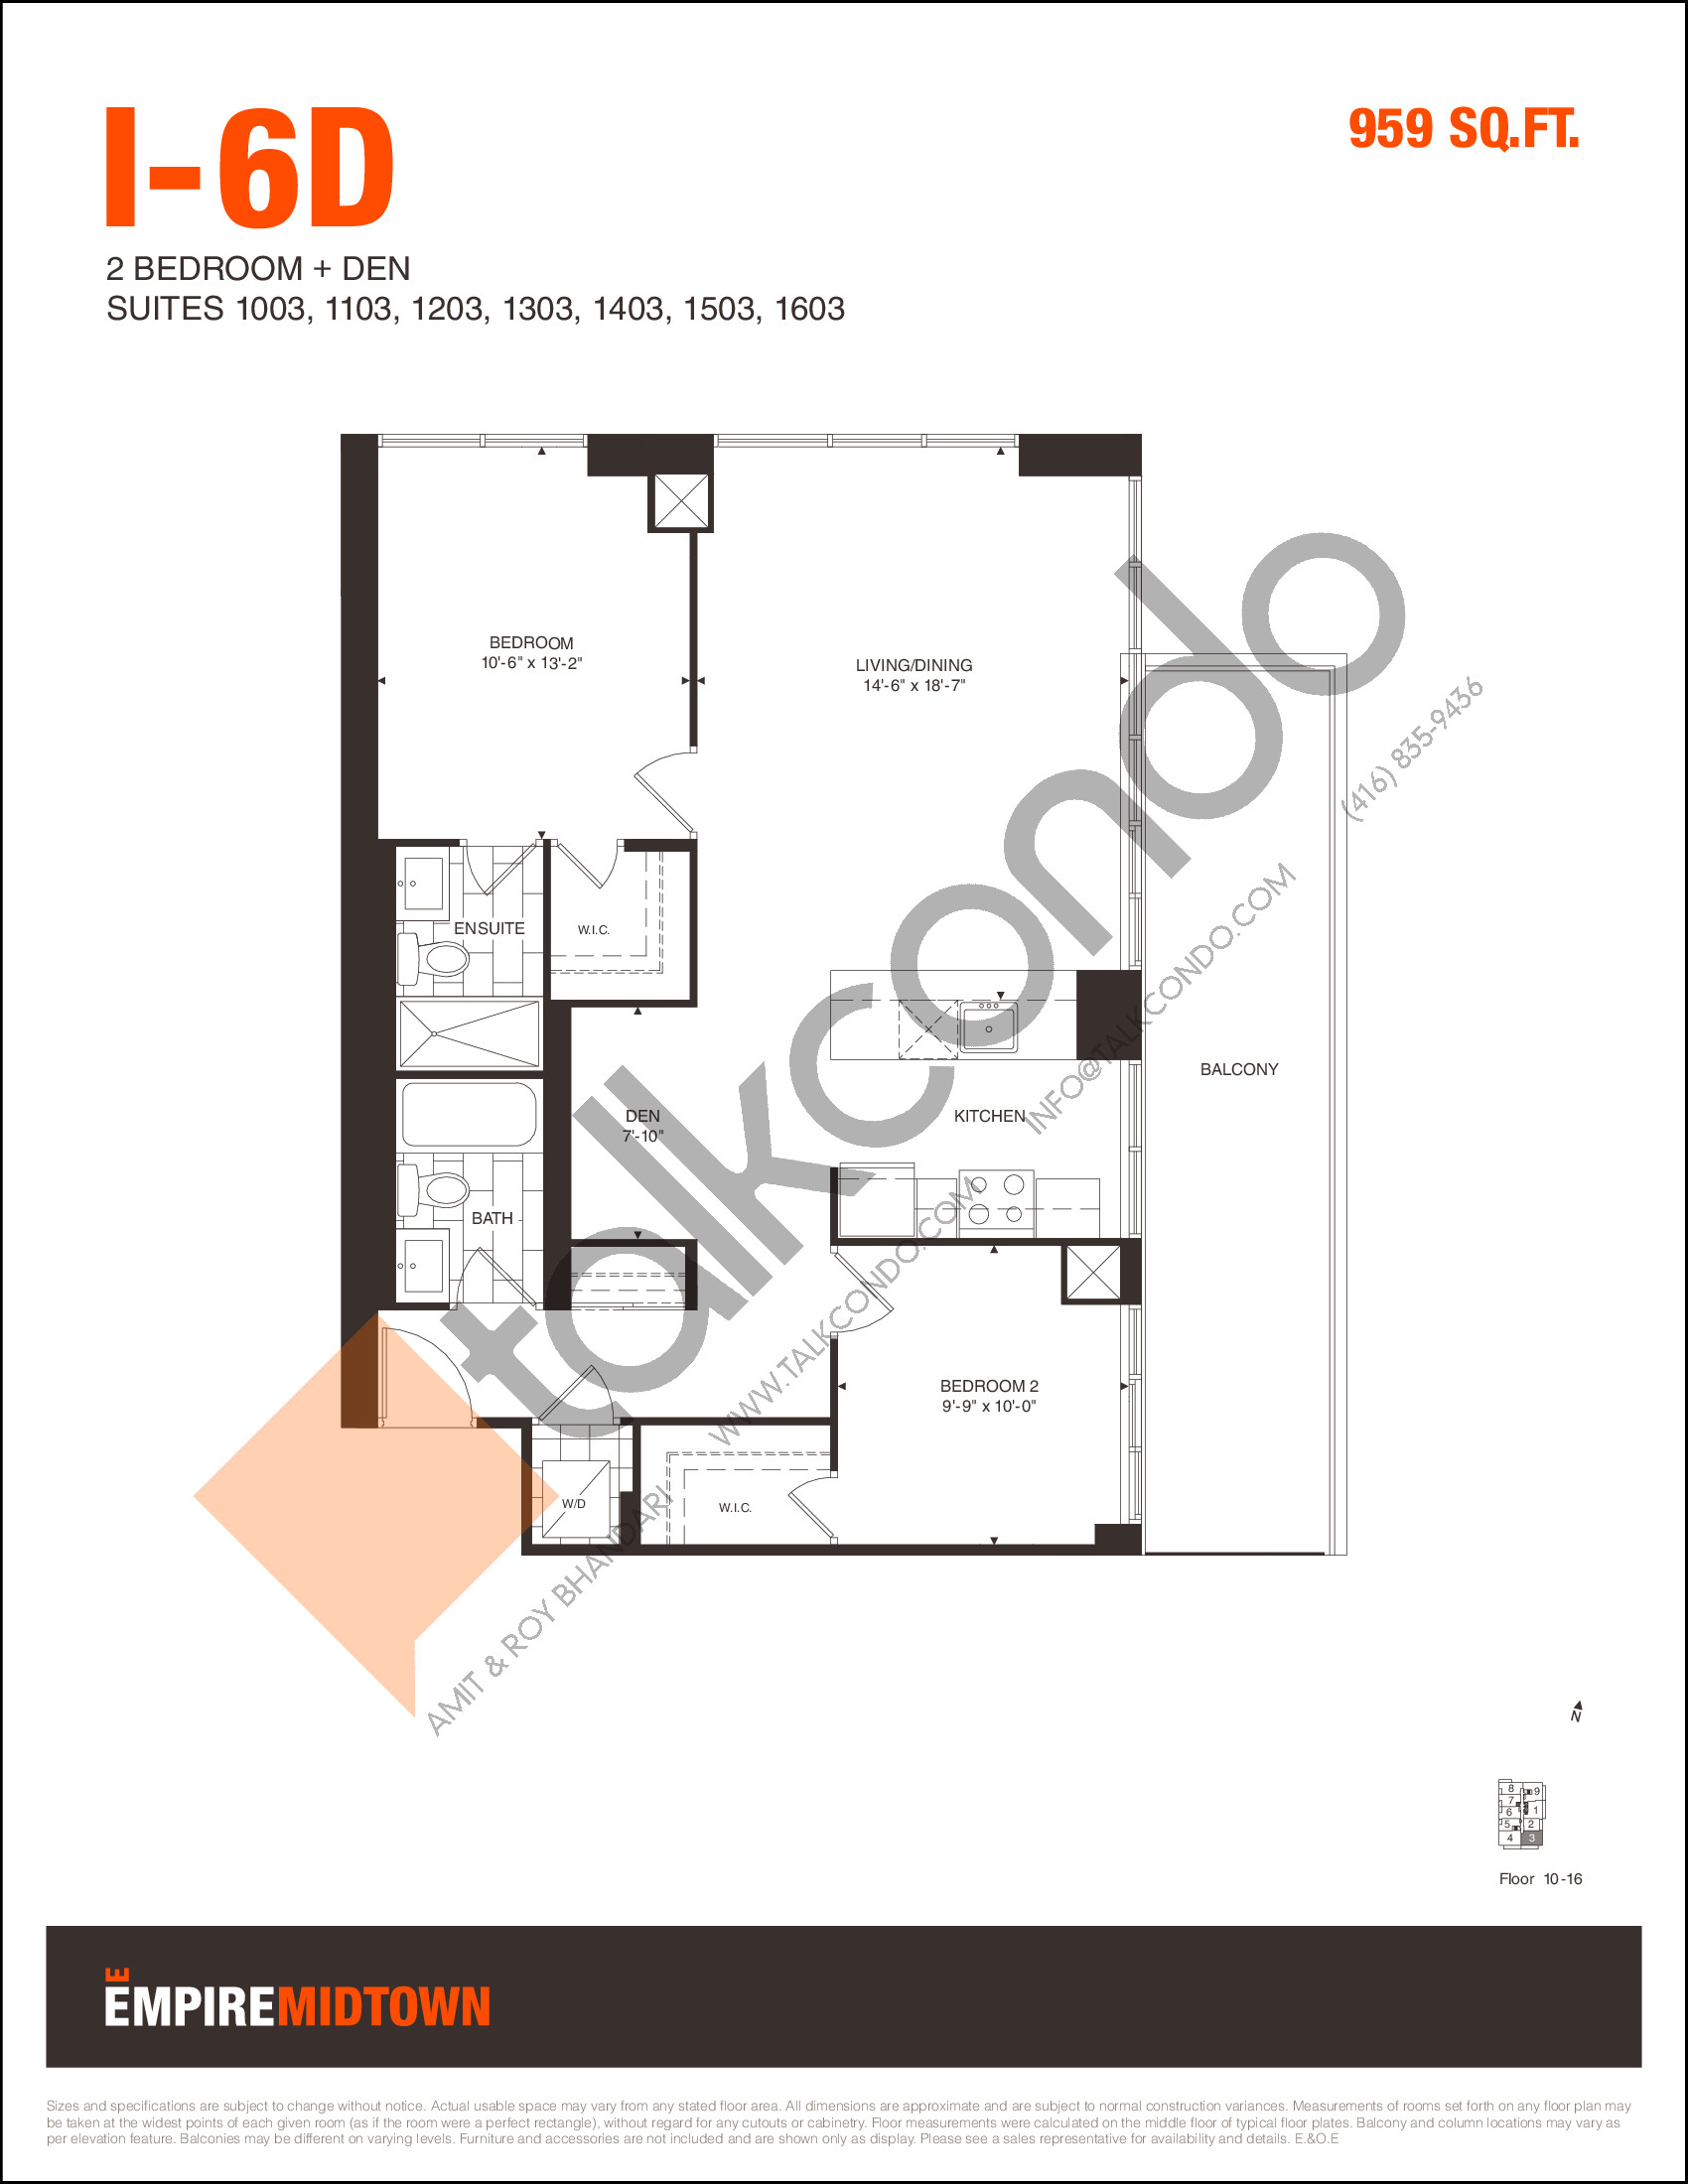 I-6D Floor Plan at Empire Midtown Condos - 959 sq.ft